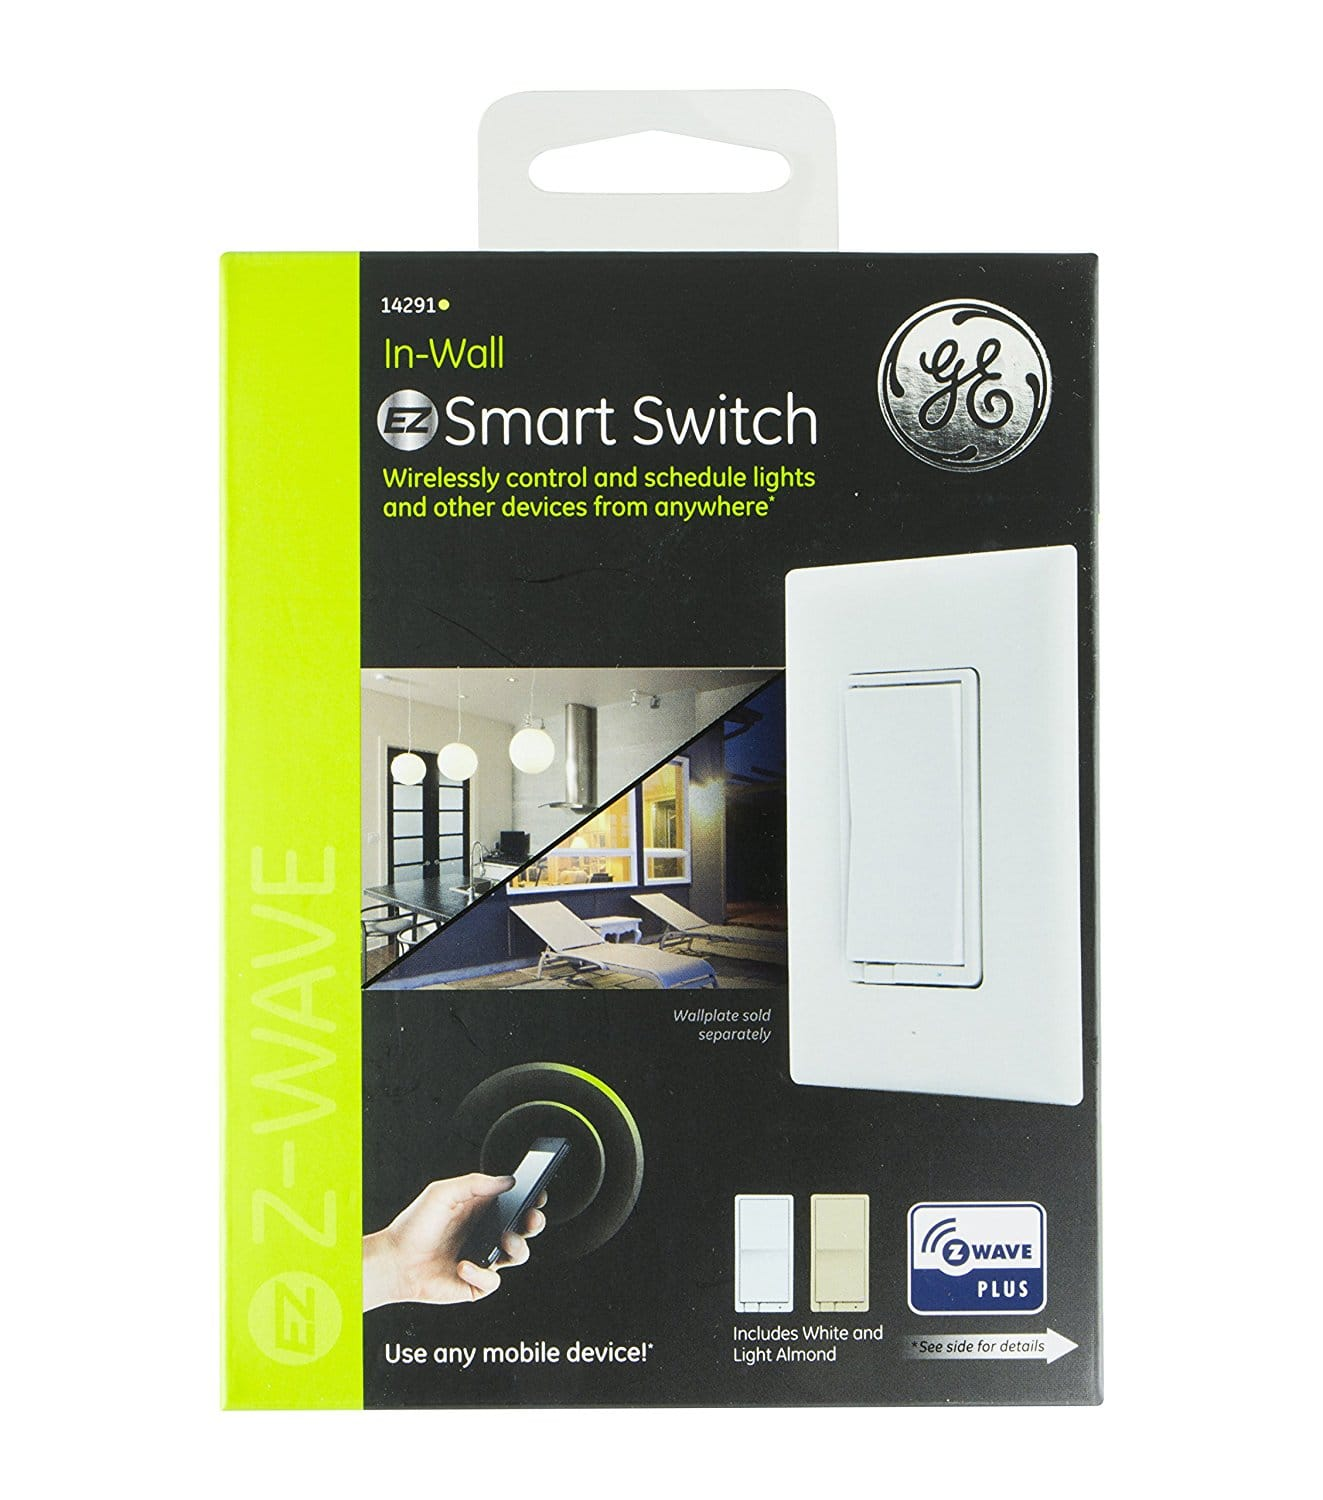 GE Z-Wave Plus Wireless Smart Lighting On/Off Switch - Slickdeals.net